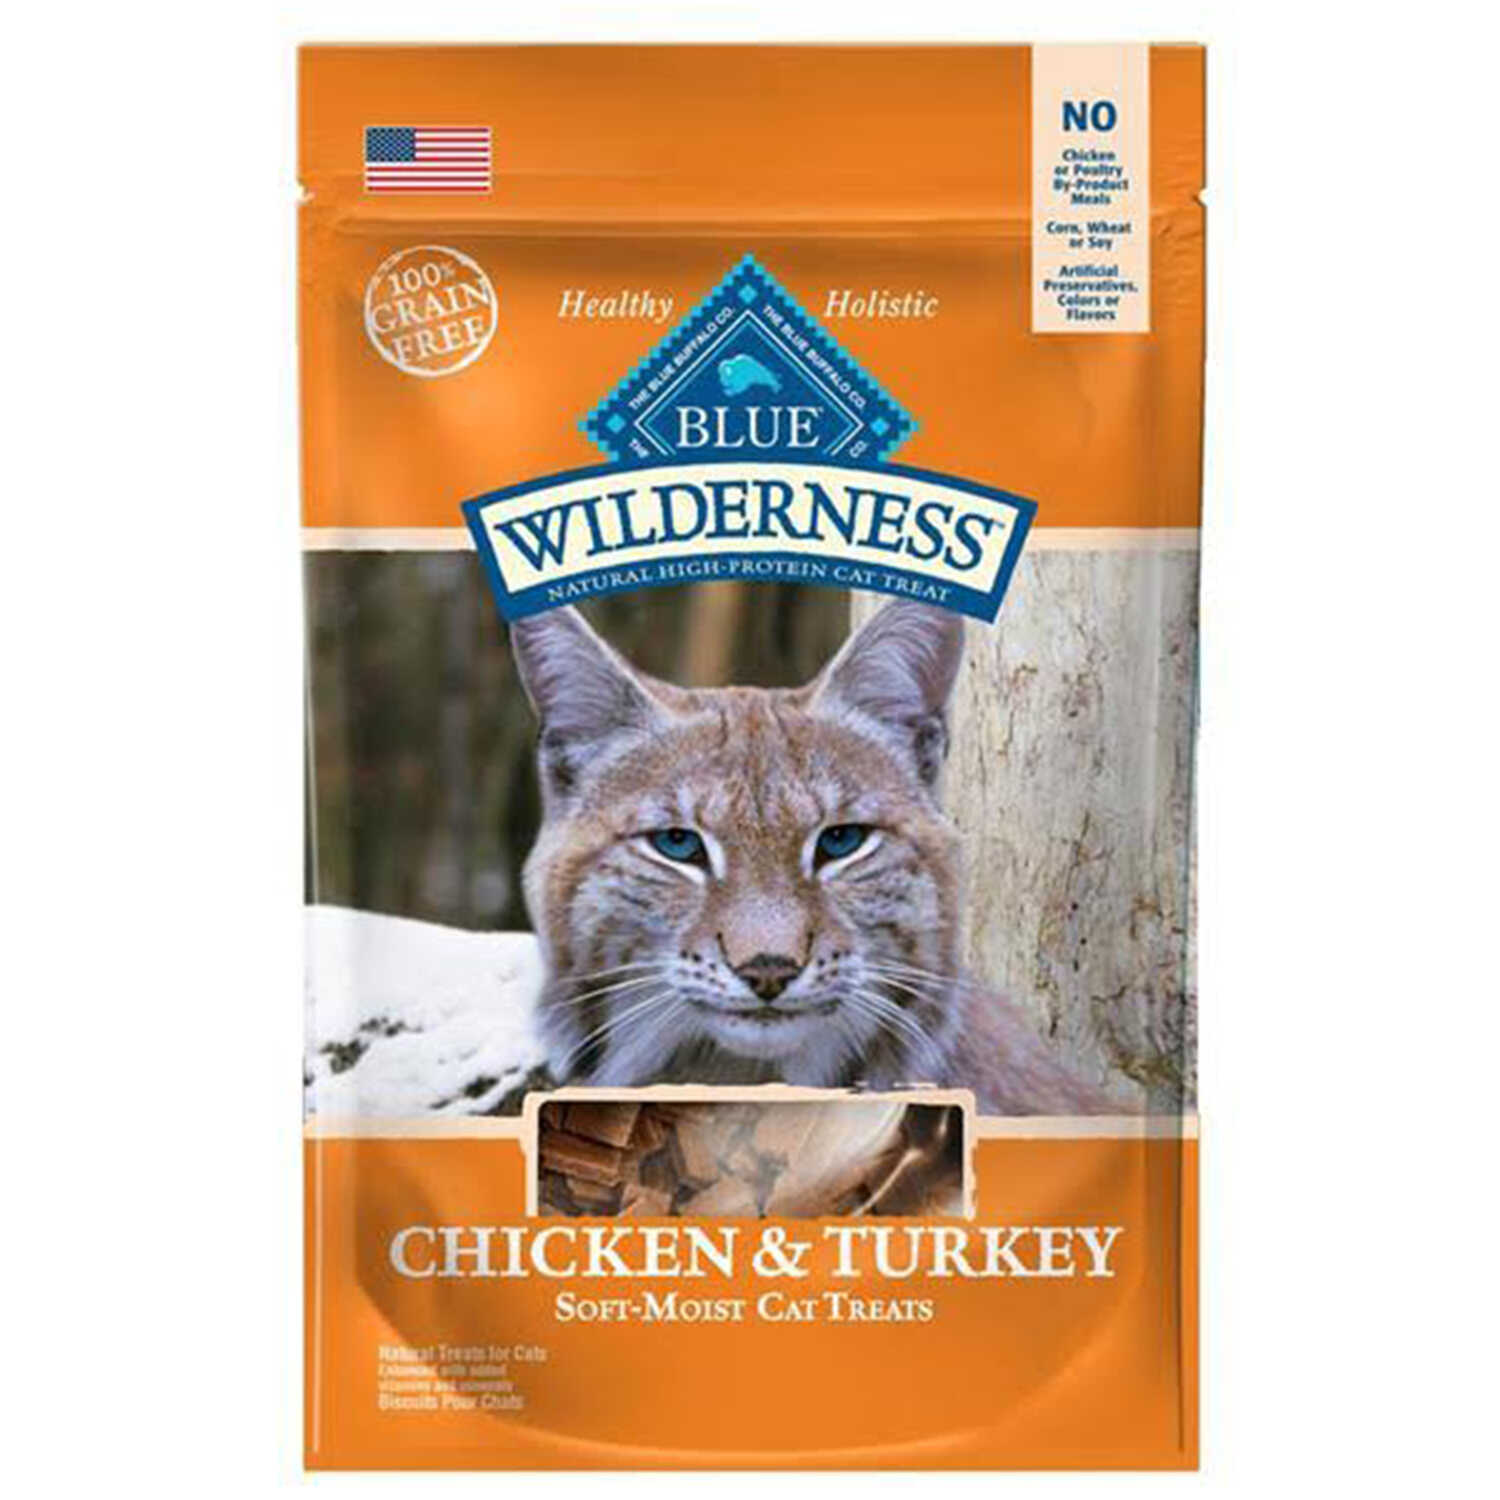 Blue Buffalo  Blue Wilderness  Chicken and Turkey  Cat  Grain Free Treats  1 pk 2 oz.